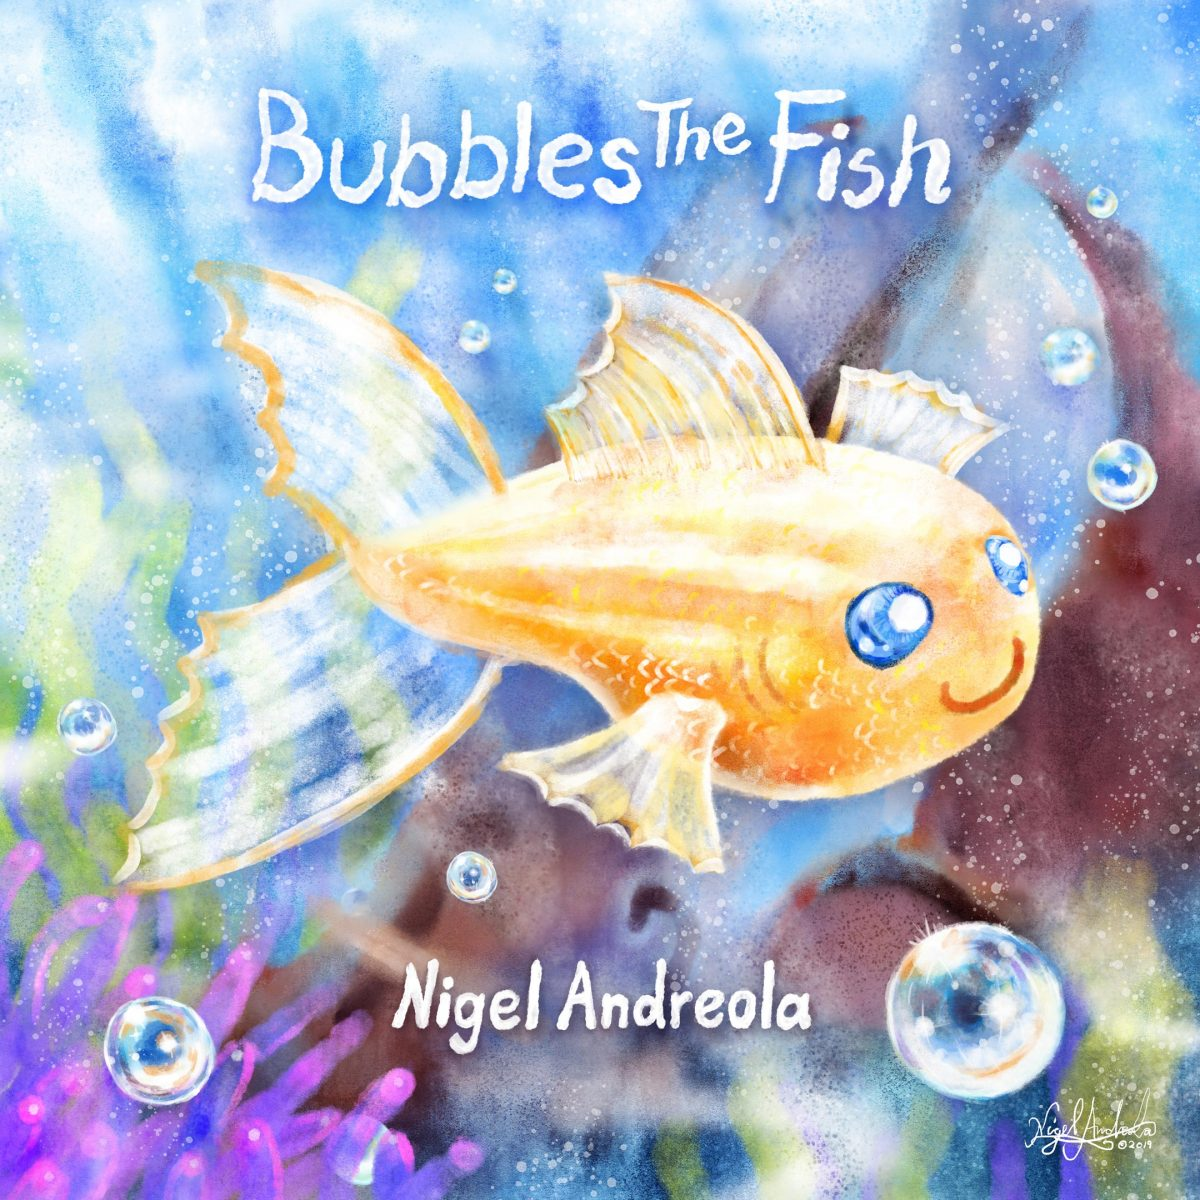 Bubbles The Fish Nigel Andreola